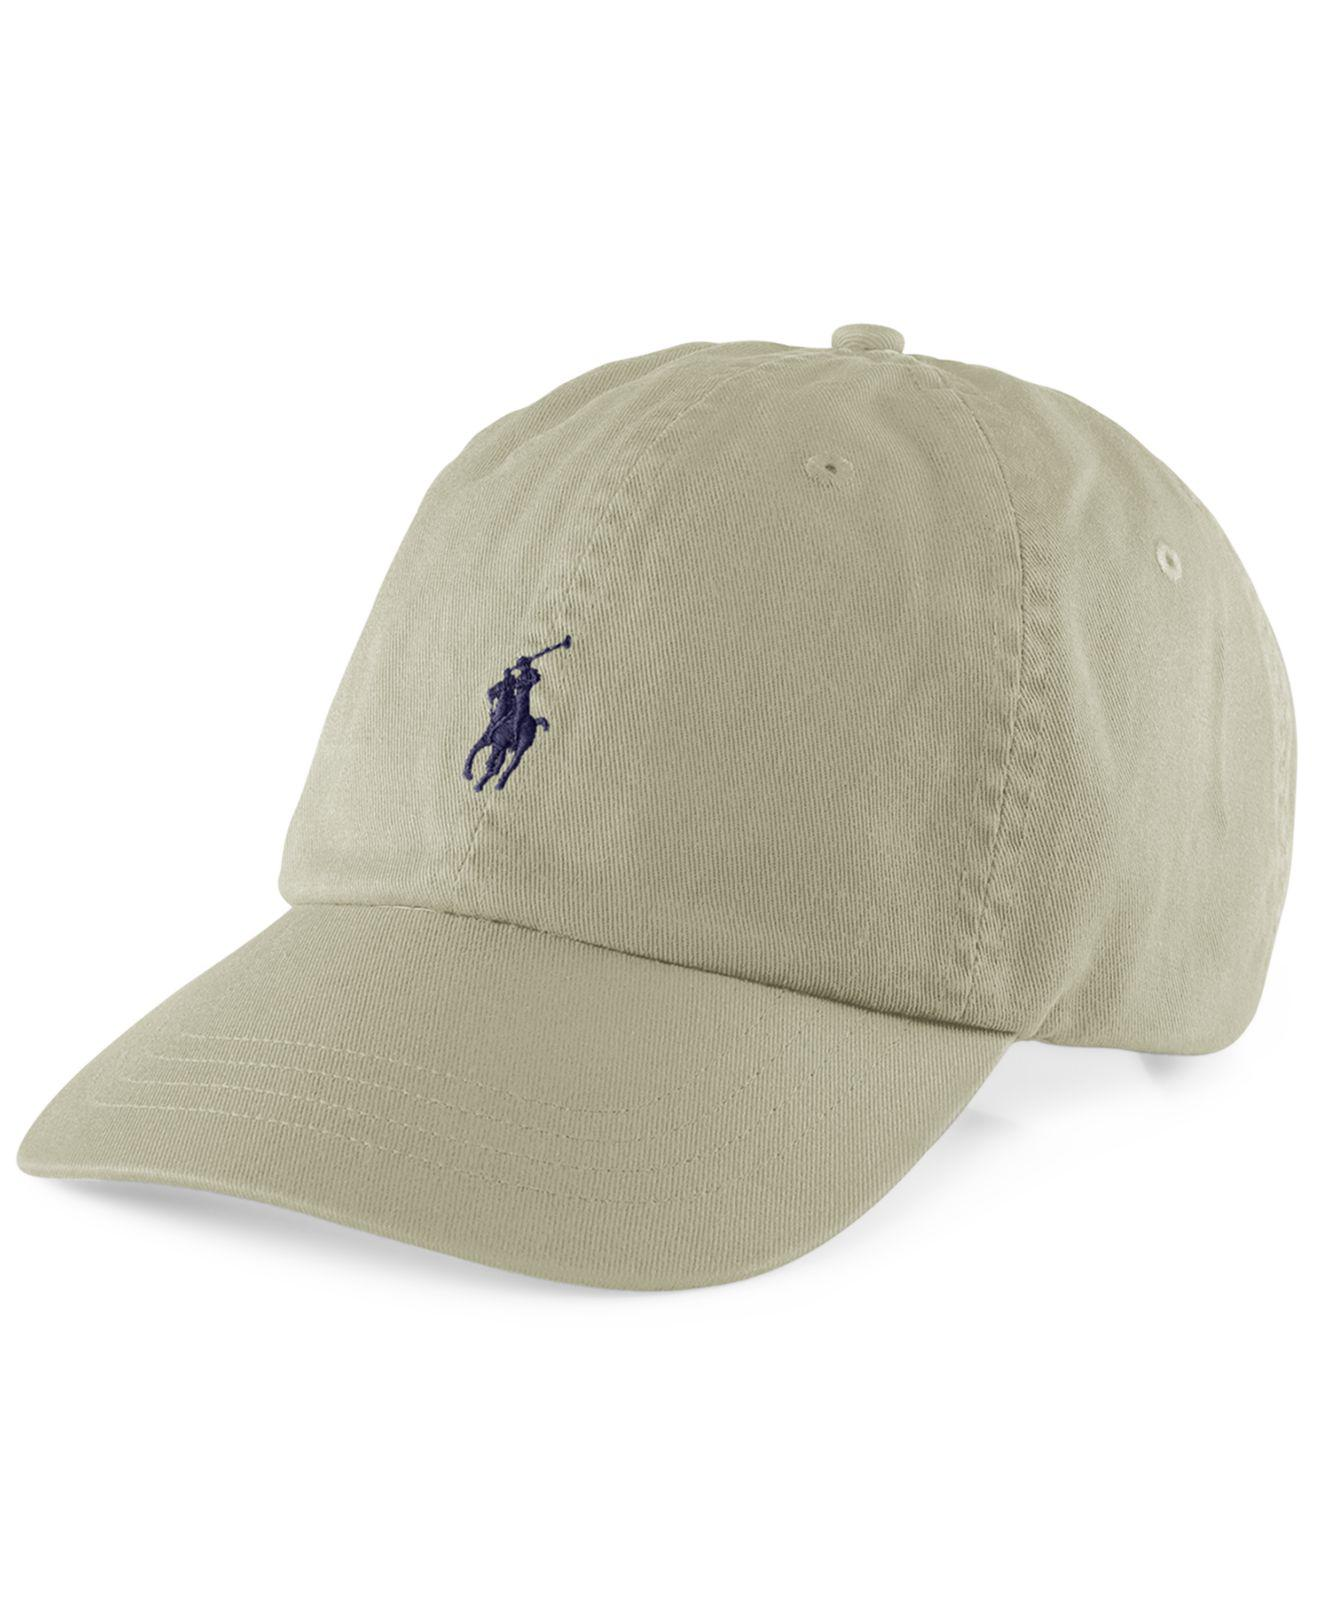 Lyst - Polo Ralph Lauren Classic Sport Cap in Natural for Men 455d728b138